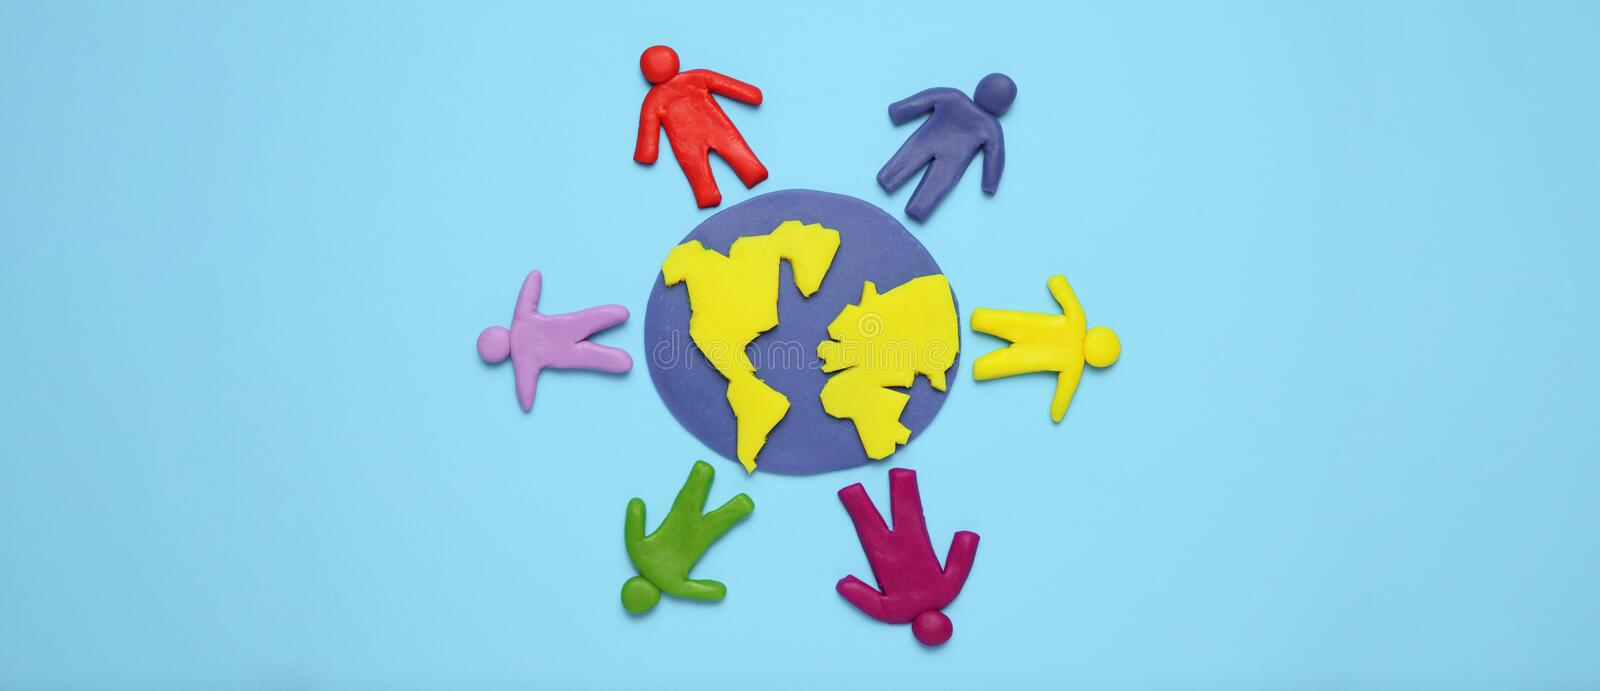 Plasticine figurines of people of different races are on planet earth. A variety of interactions, communication and globalization royalty free stock photos